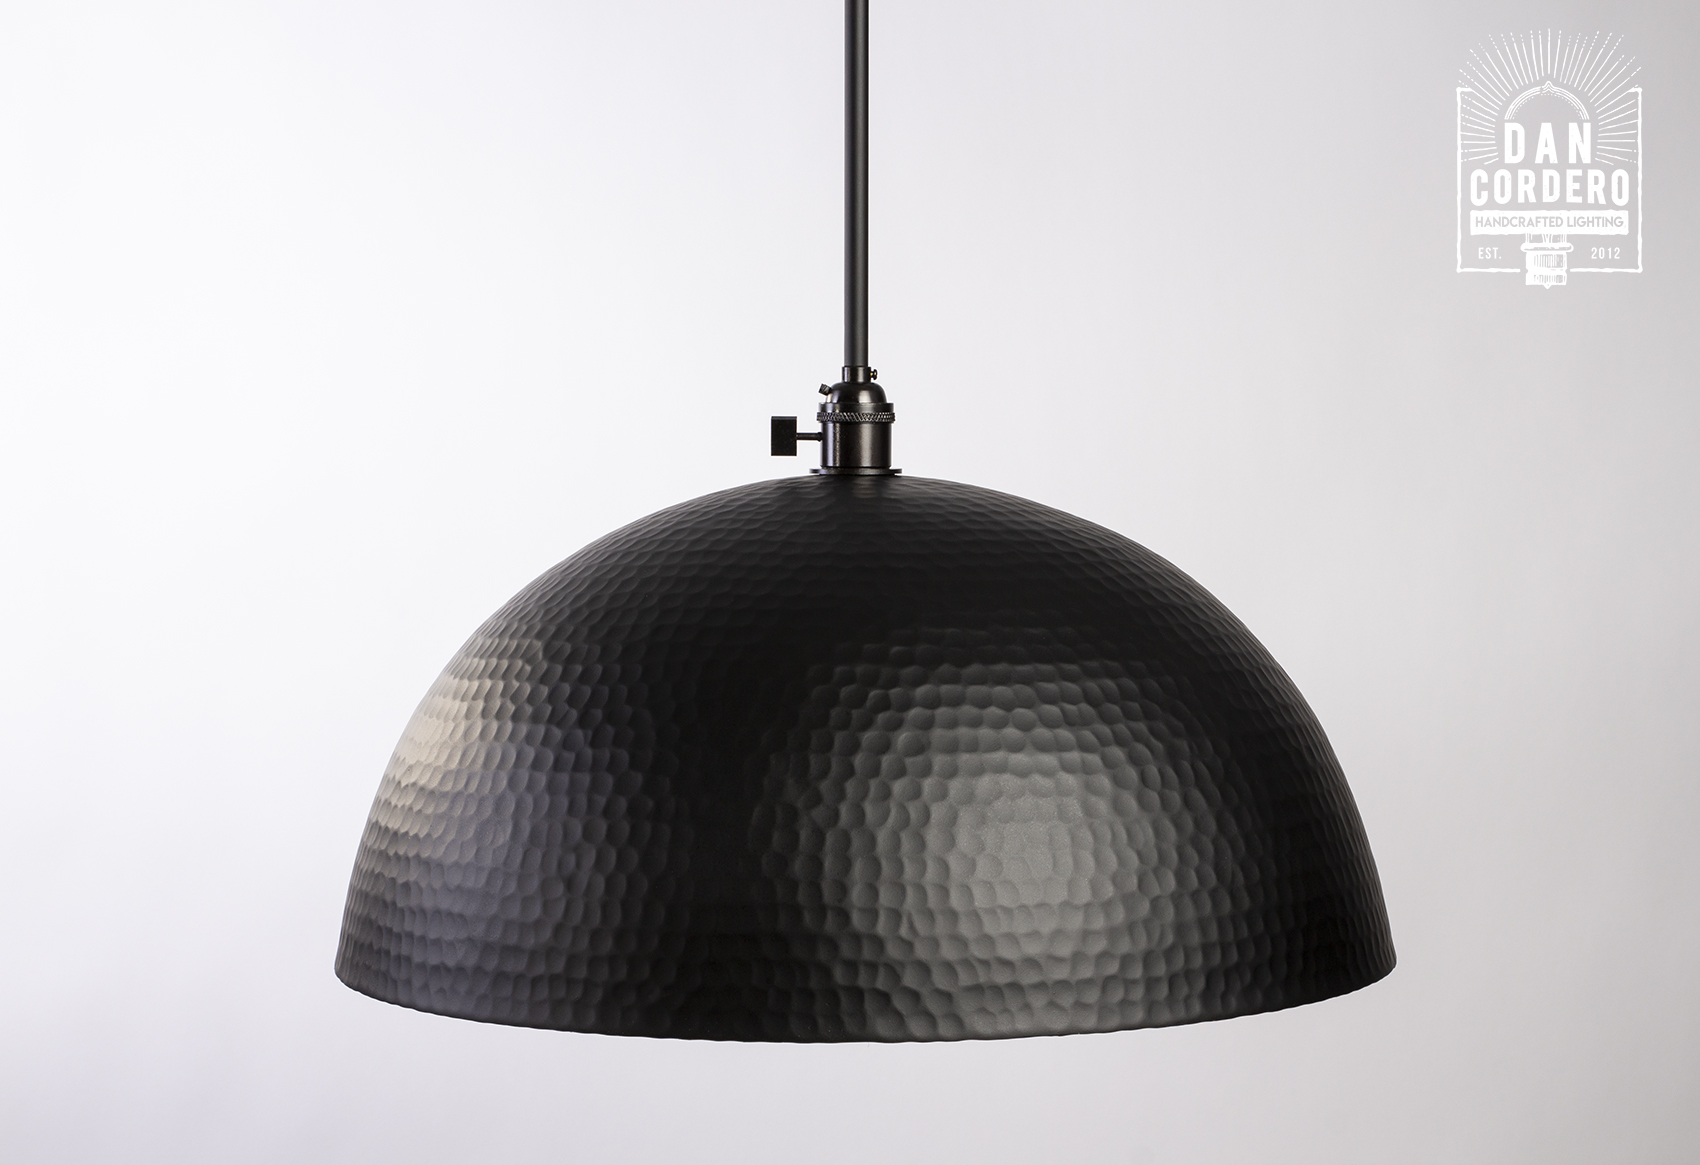 Black Hammered Dome Flat Pendant Light Fixture